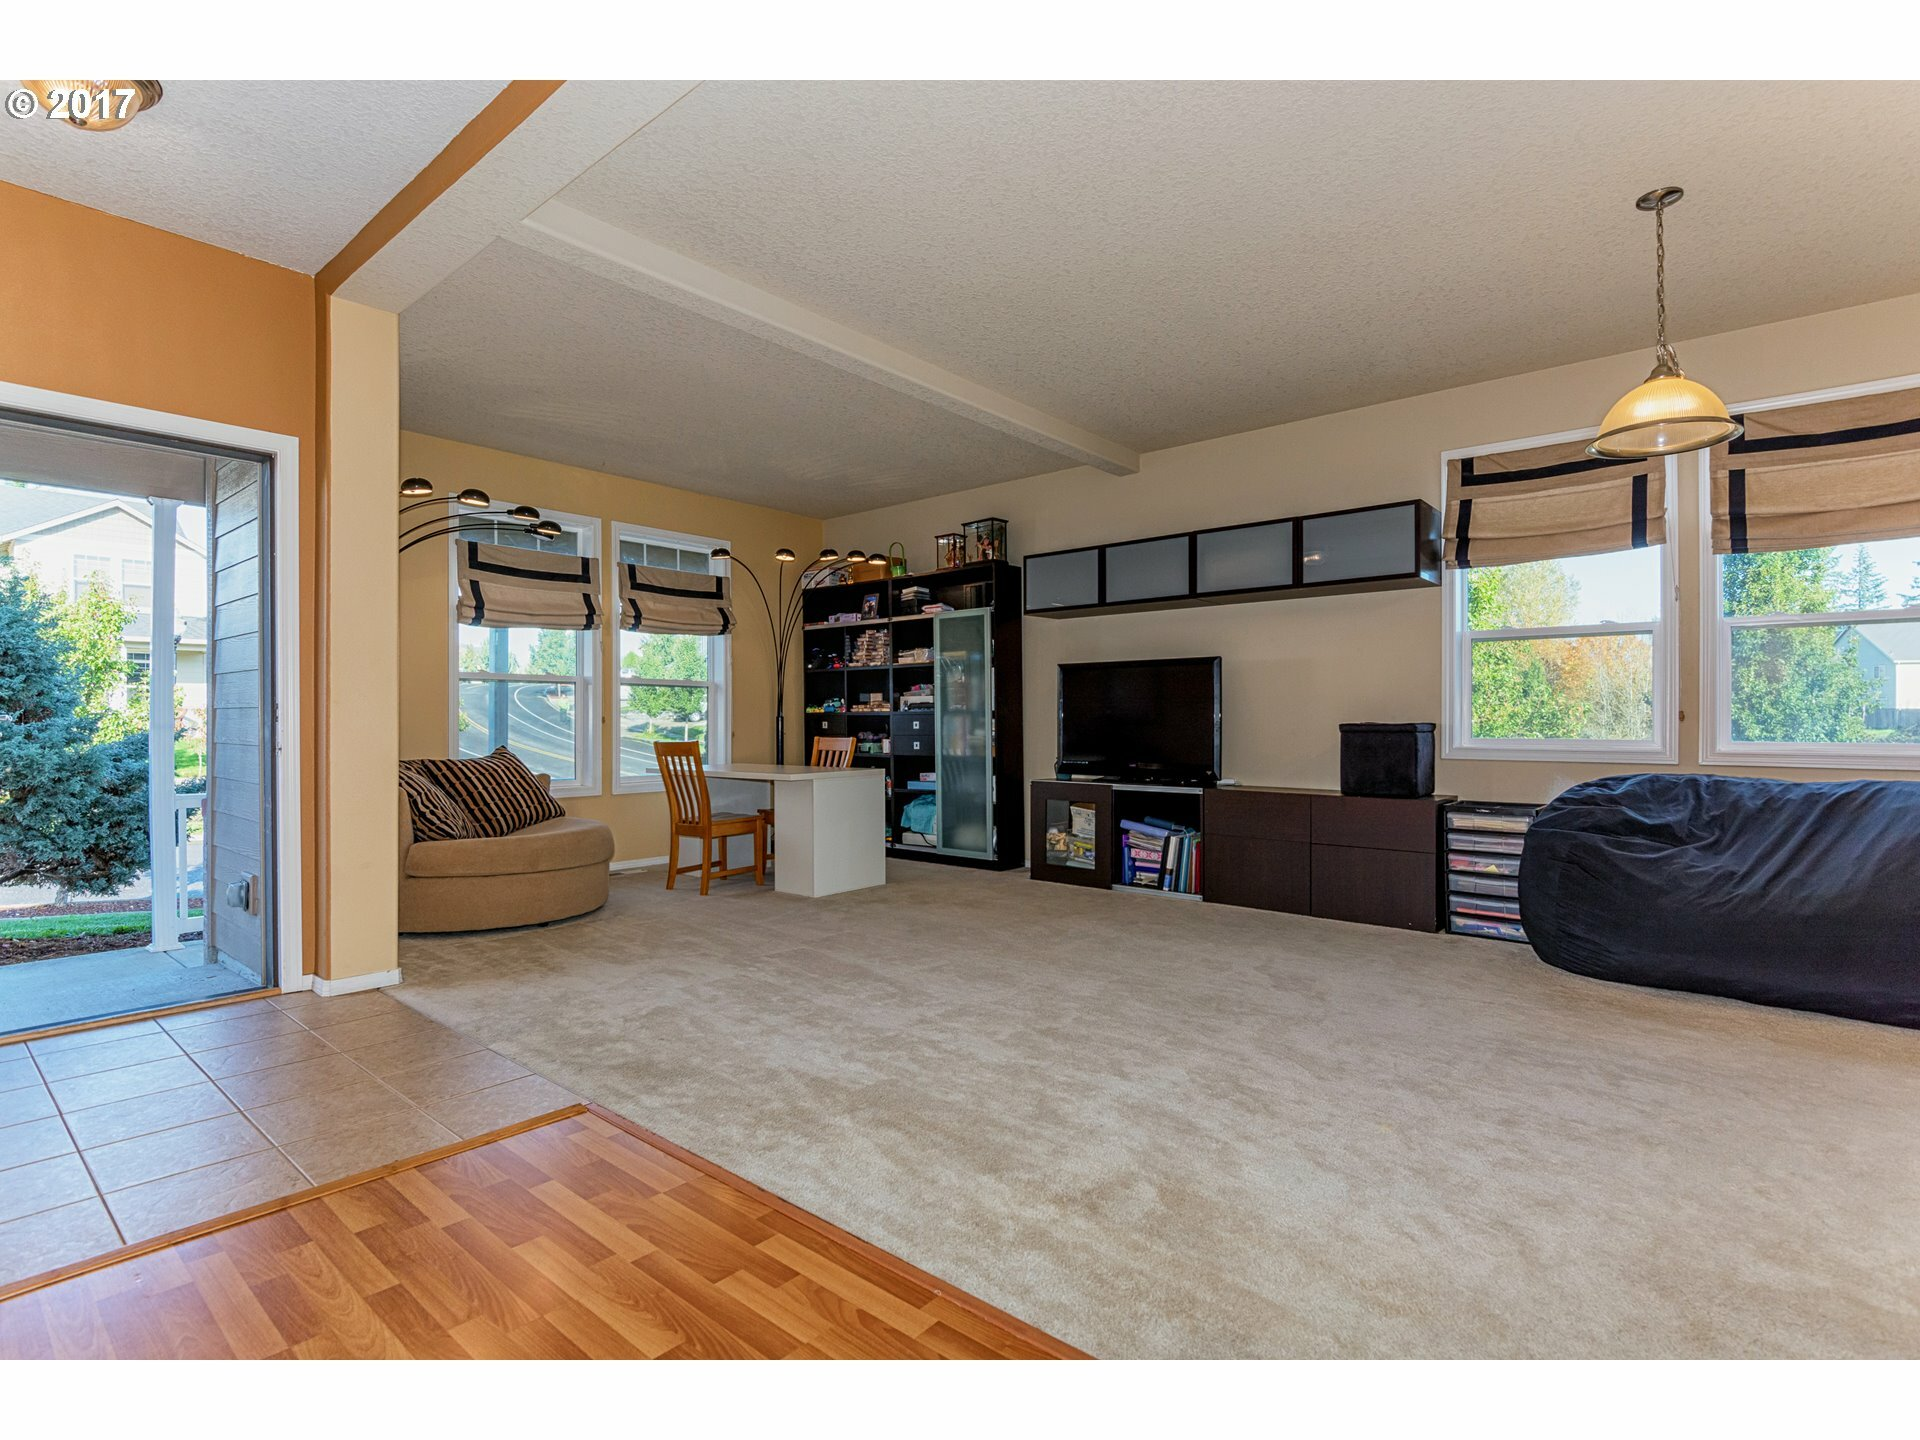 722 N 16th Ct, Ridgefield, WA - USA (photo 4)